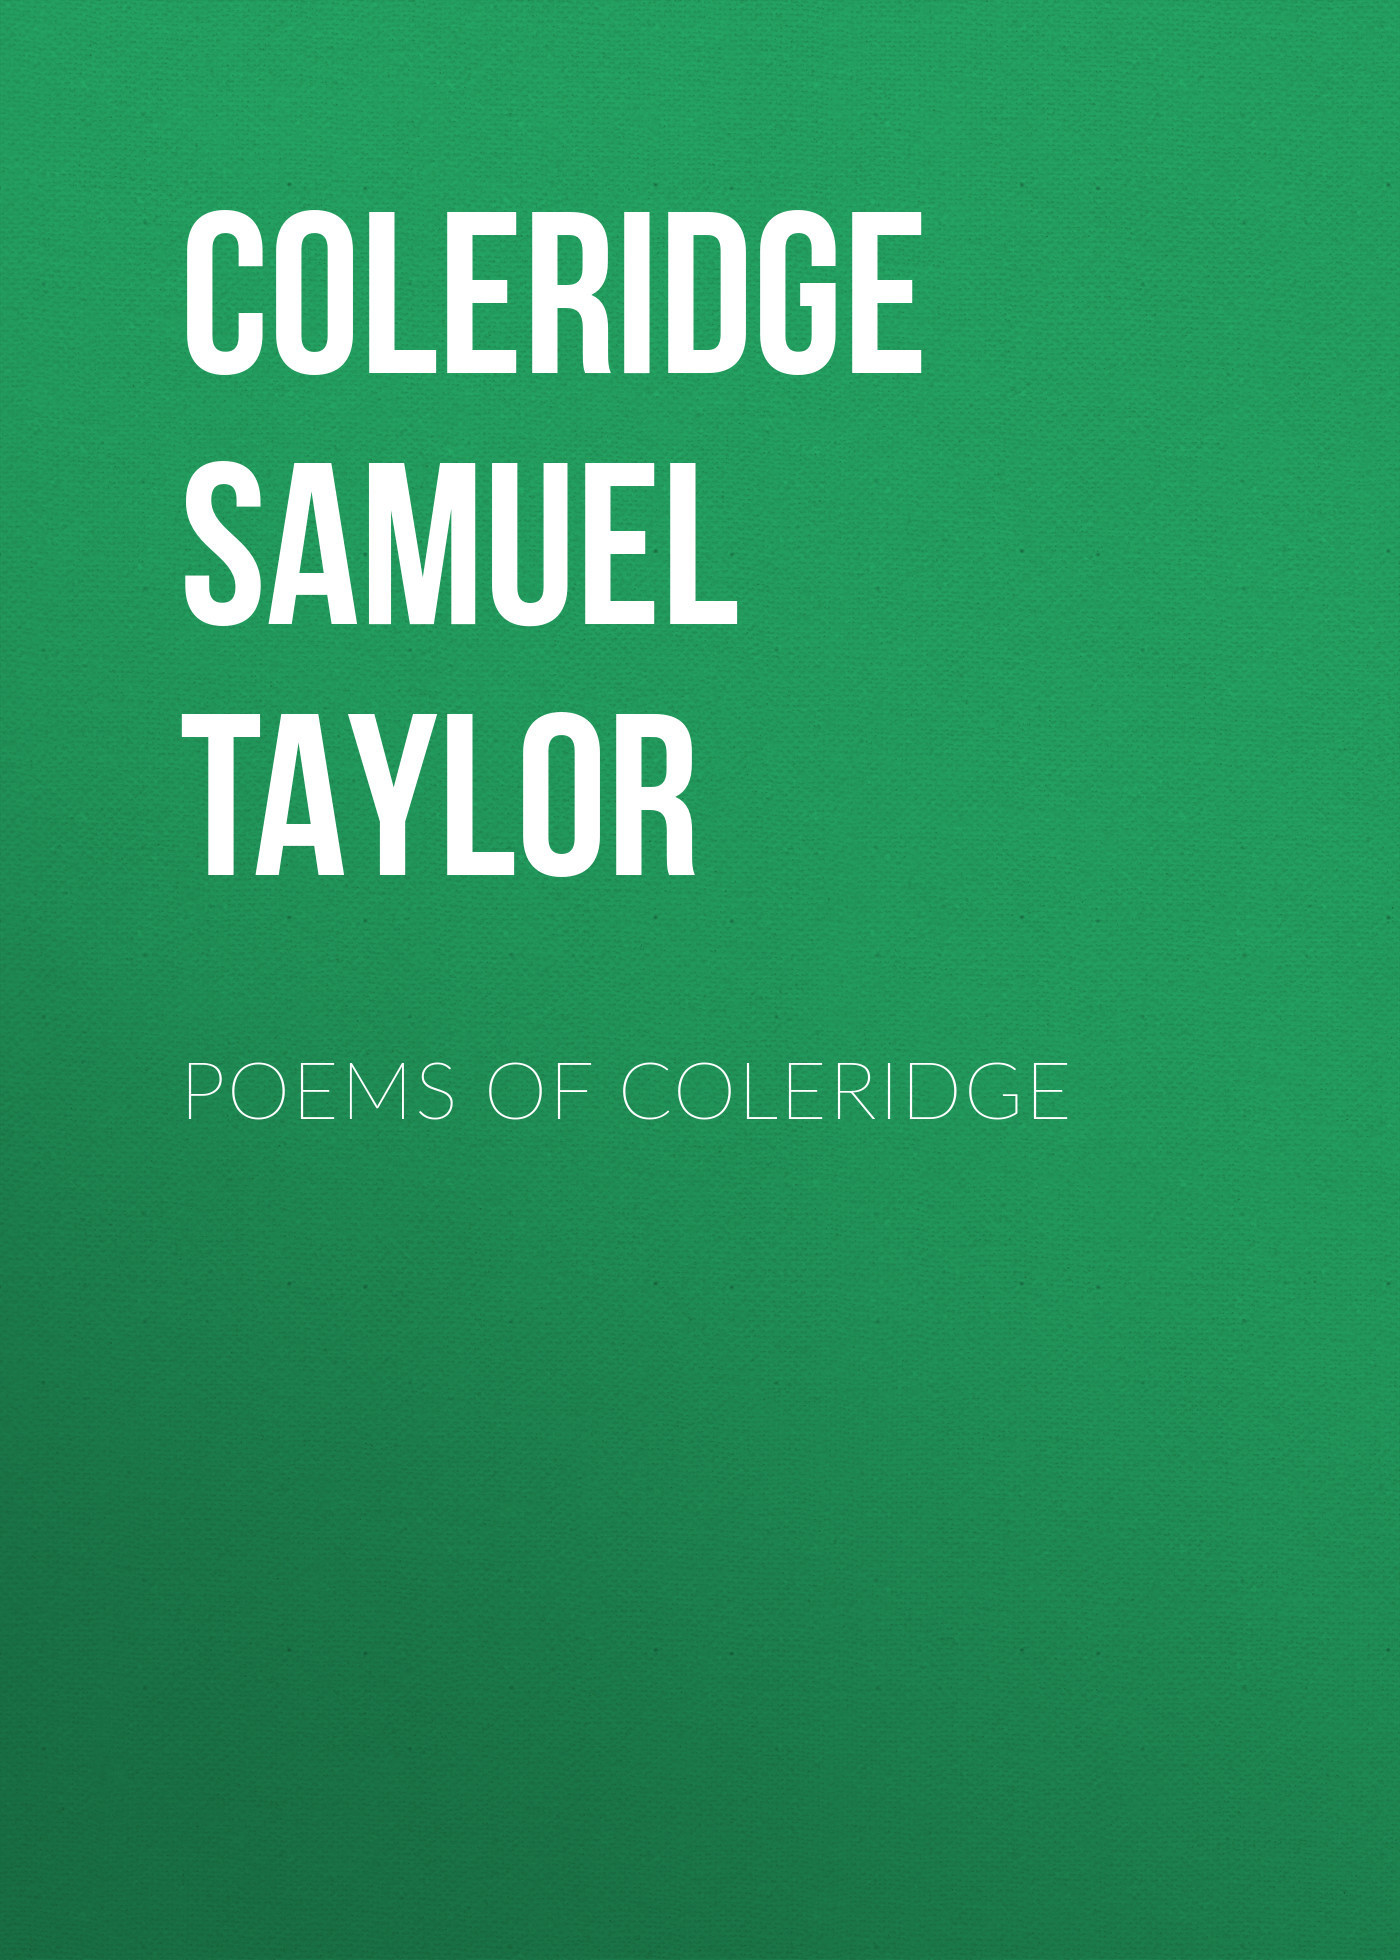 Coleridge Samuel Taylor Poems of Coleridge